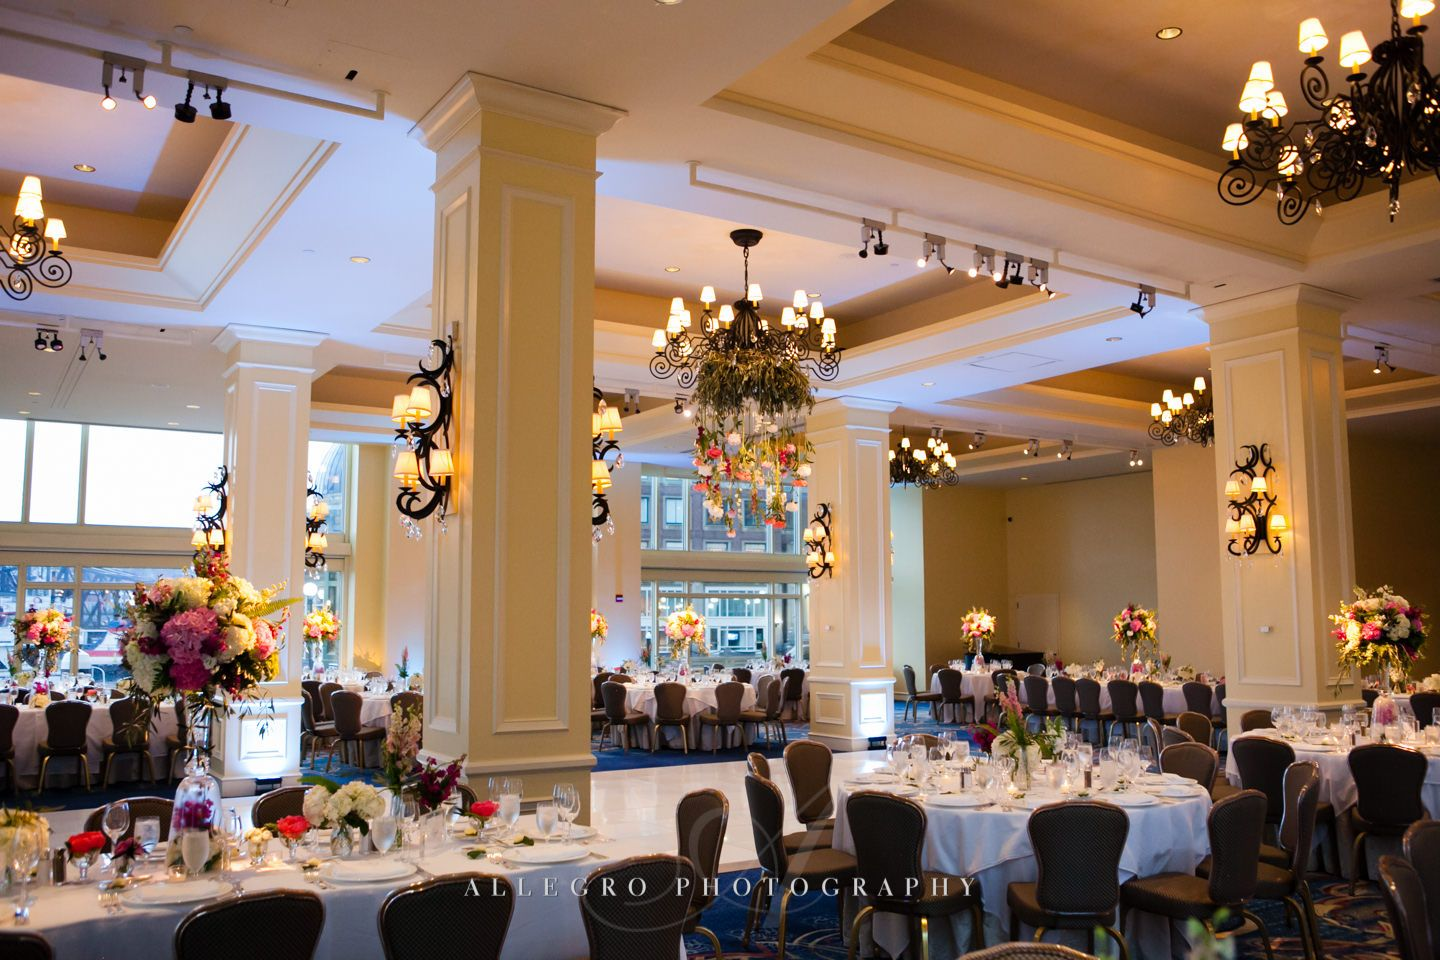 Full Room Set Up Amazing Photo By Allegro Photography